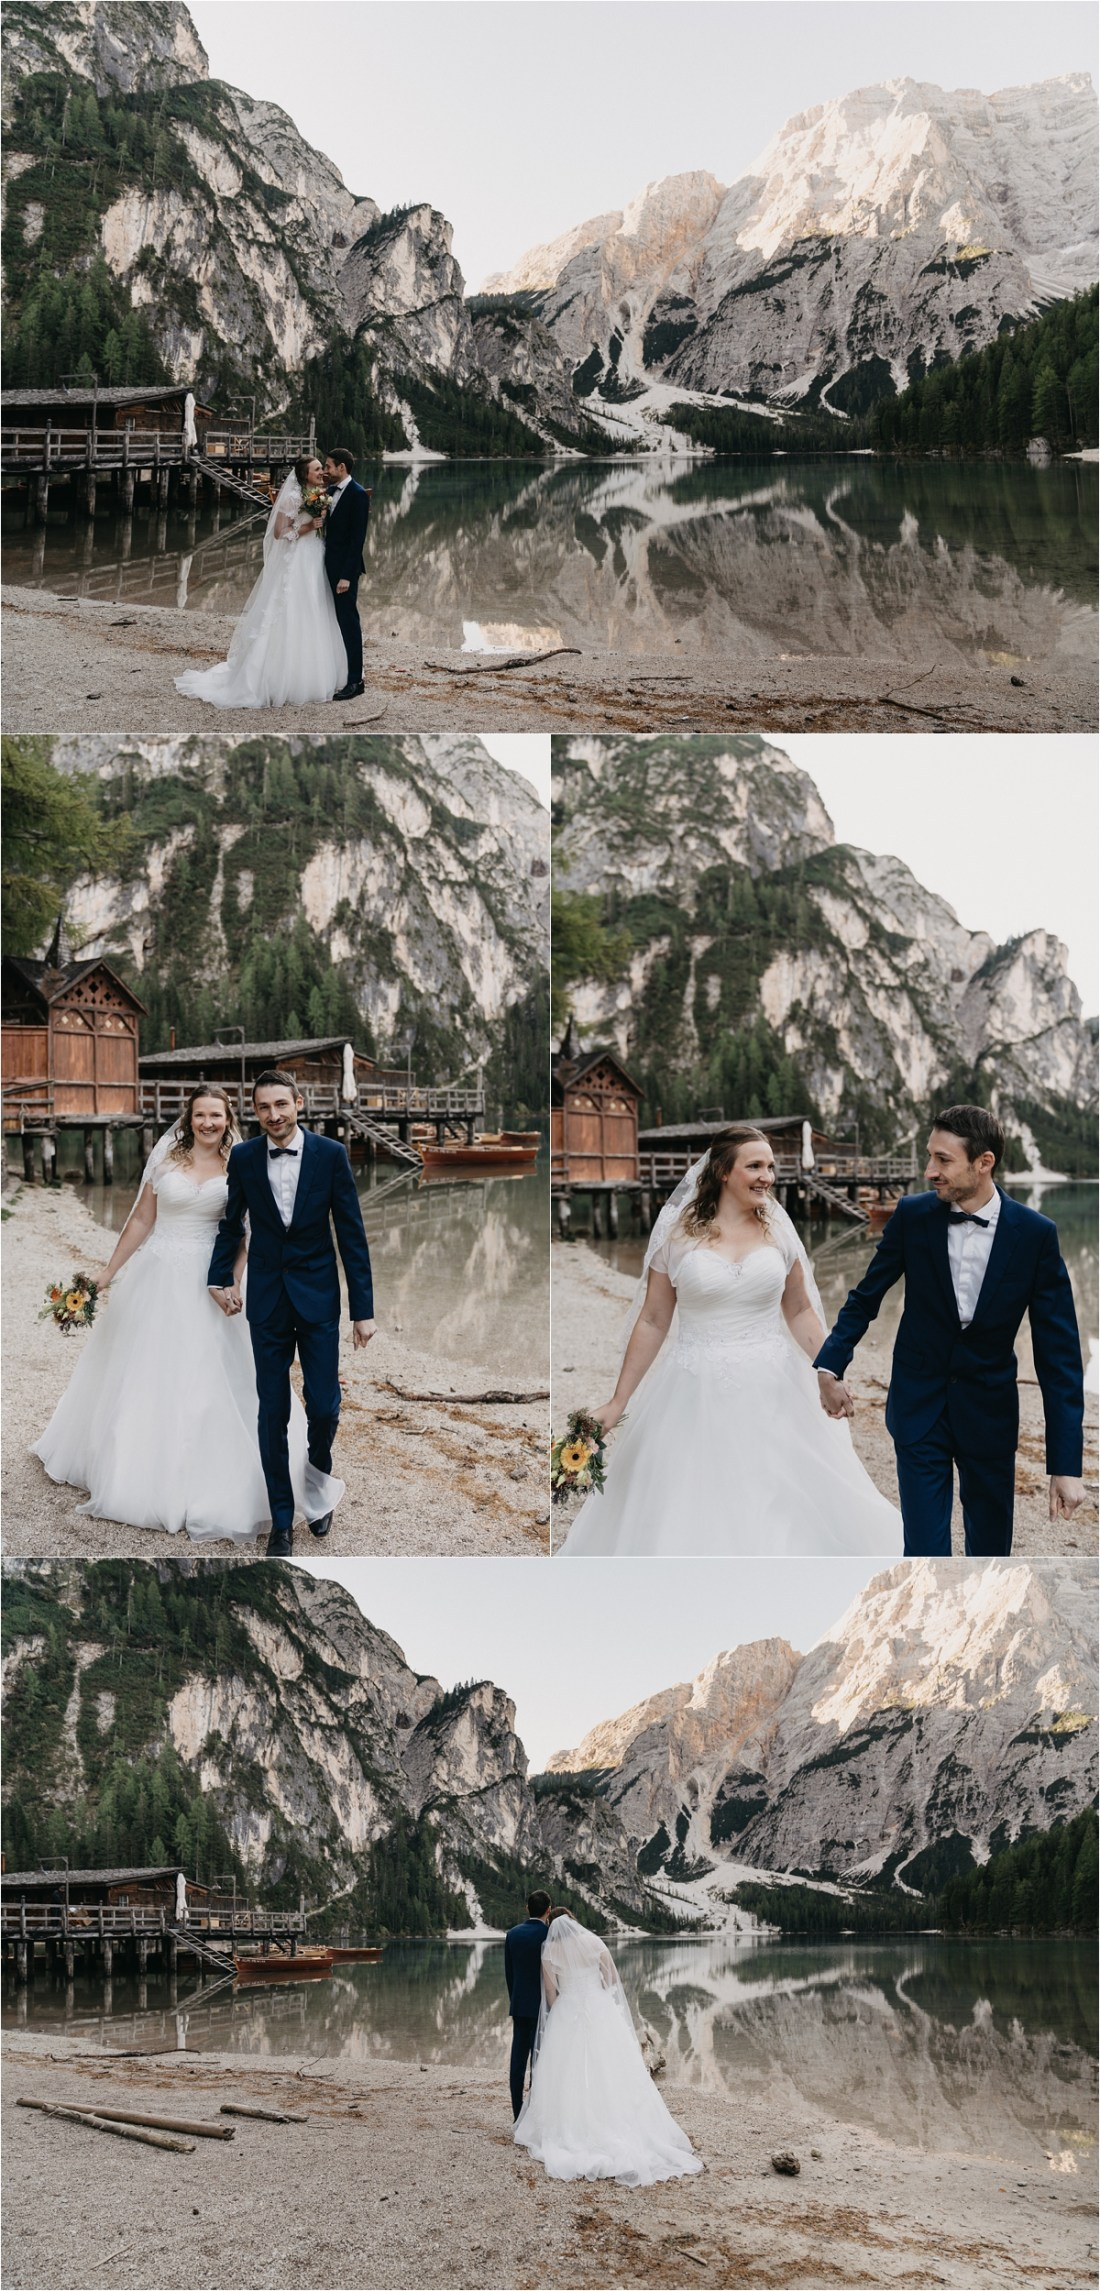 An After-wedding shoot at Pragser Wildsee in Italy by Romany Flower